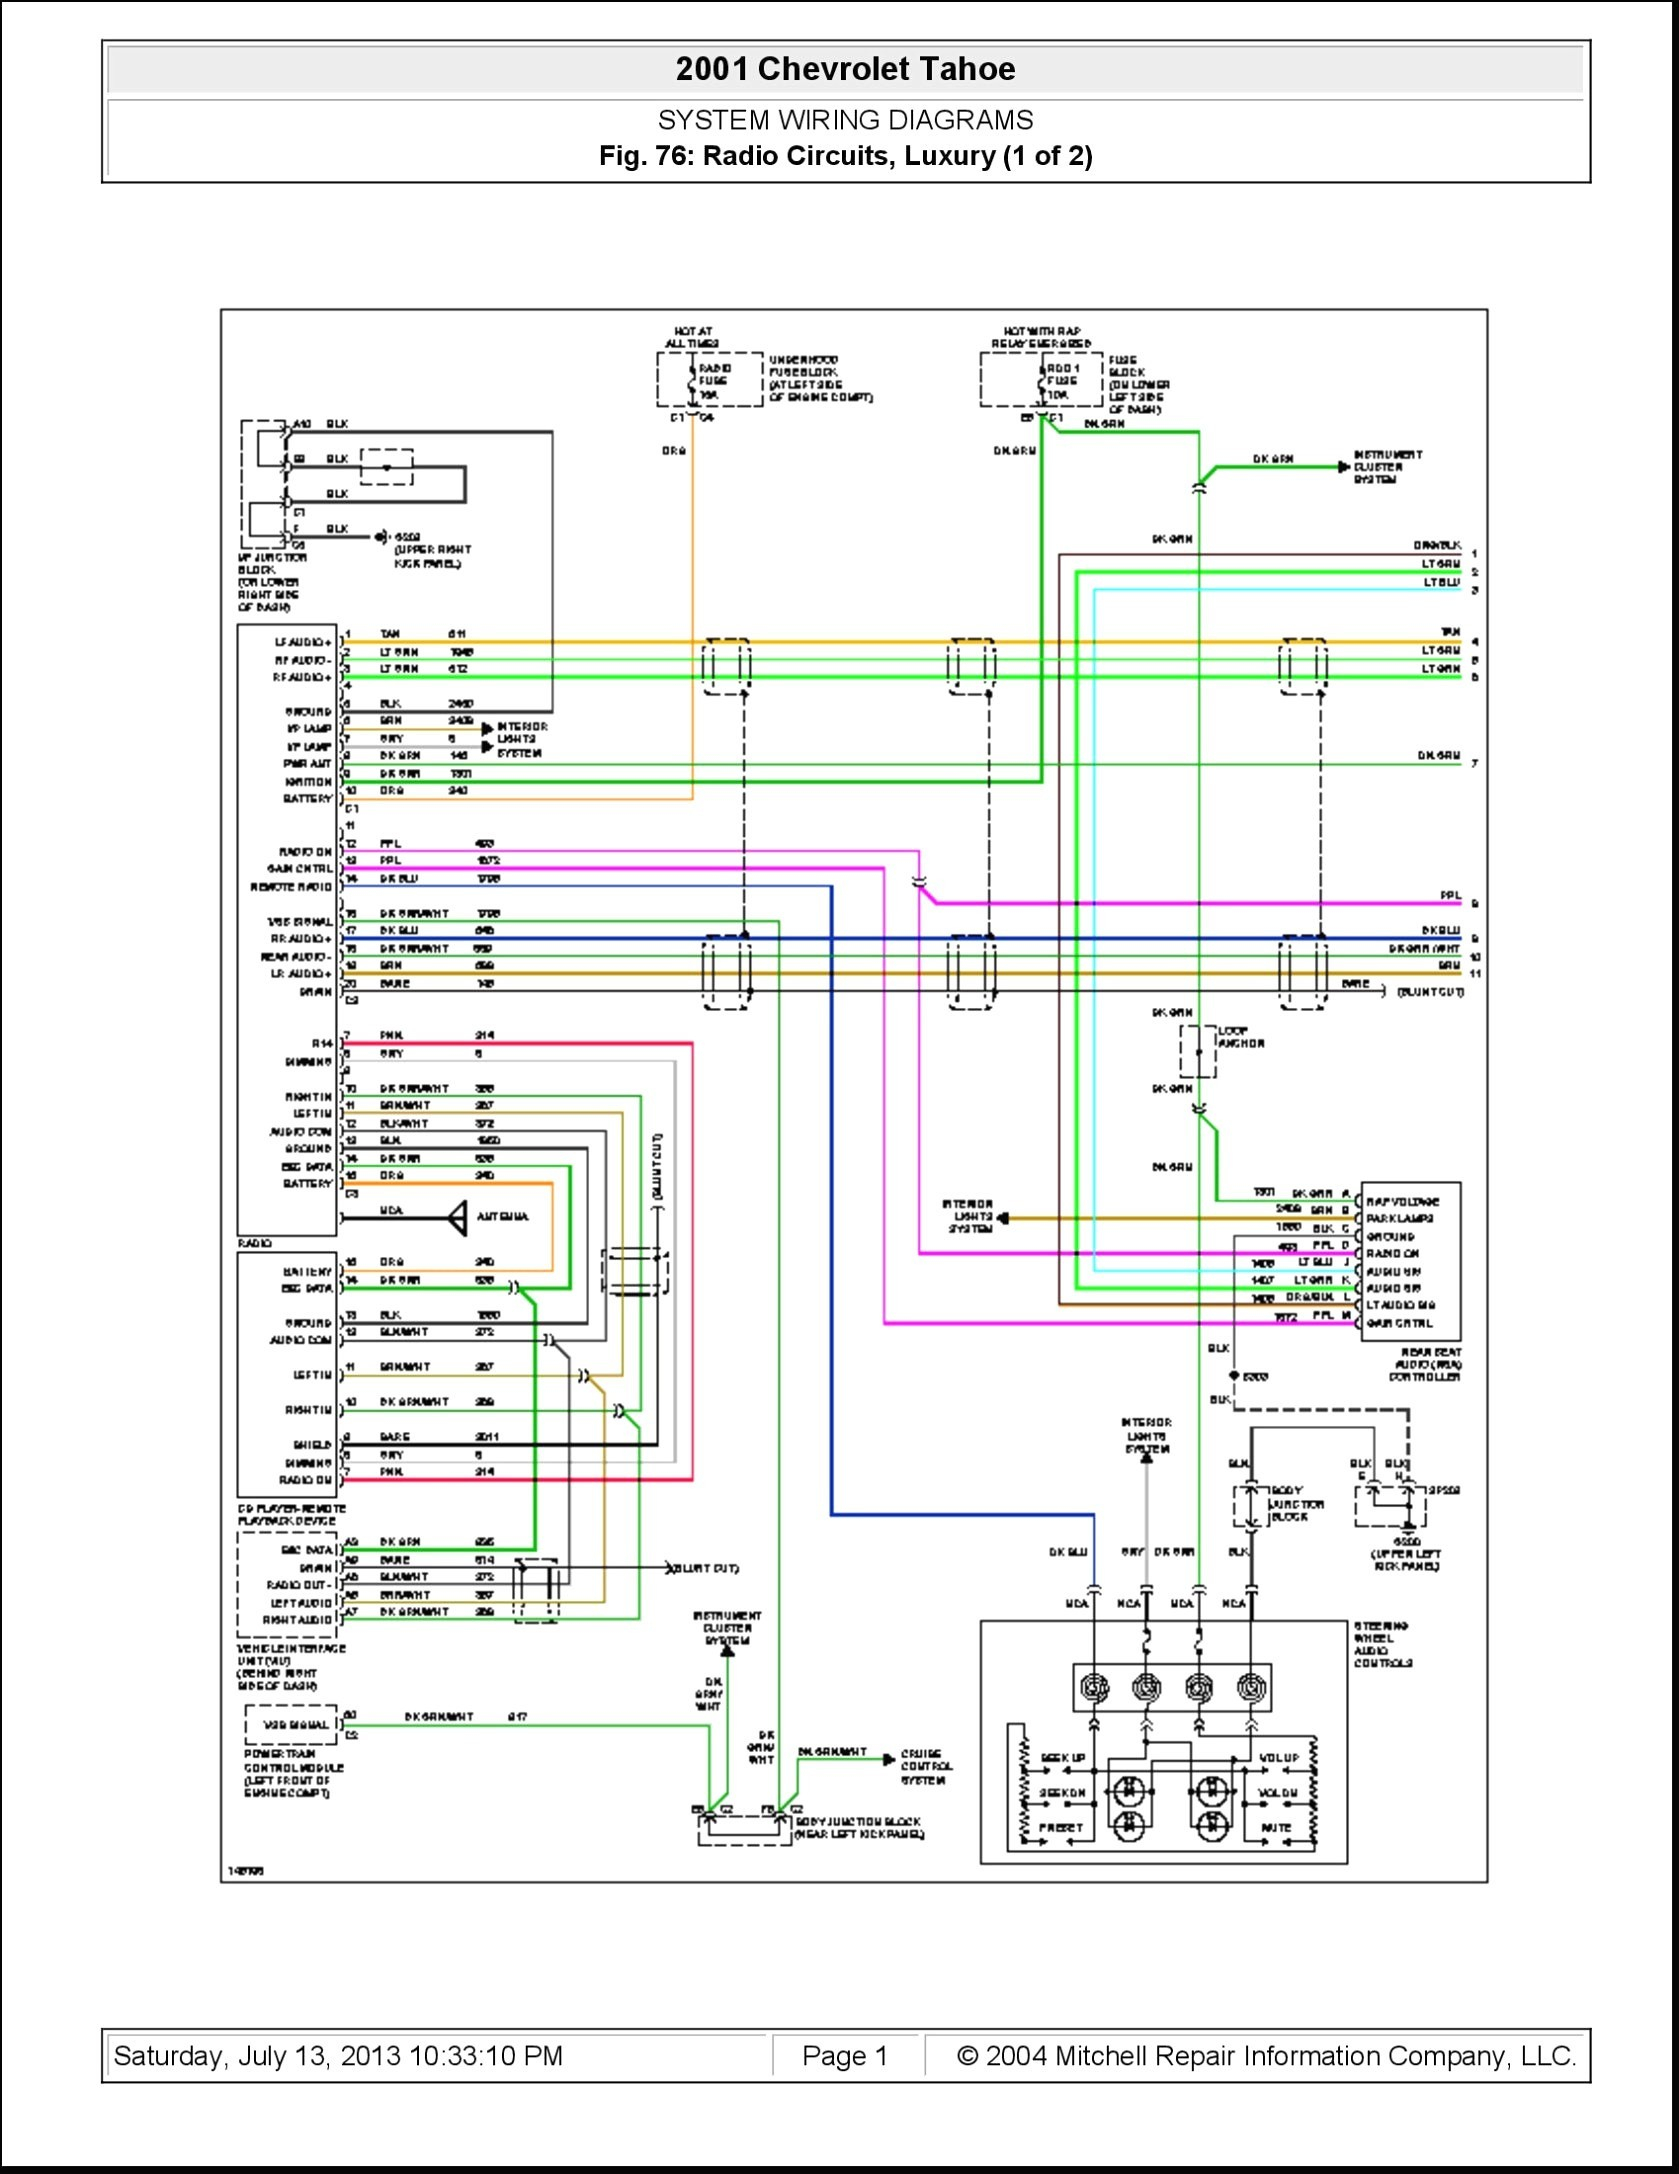 hight resolution of 2013 chevy wiring harness diagram wiring diagram load 2007 chevy silverado radio wiring harness diagram